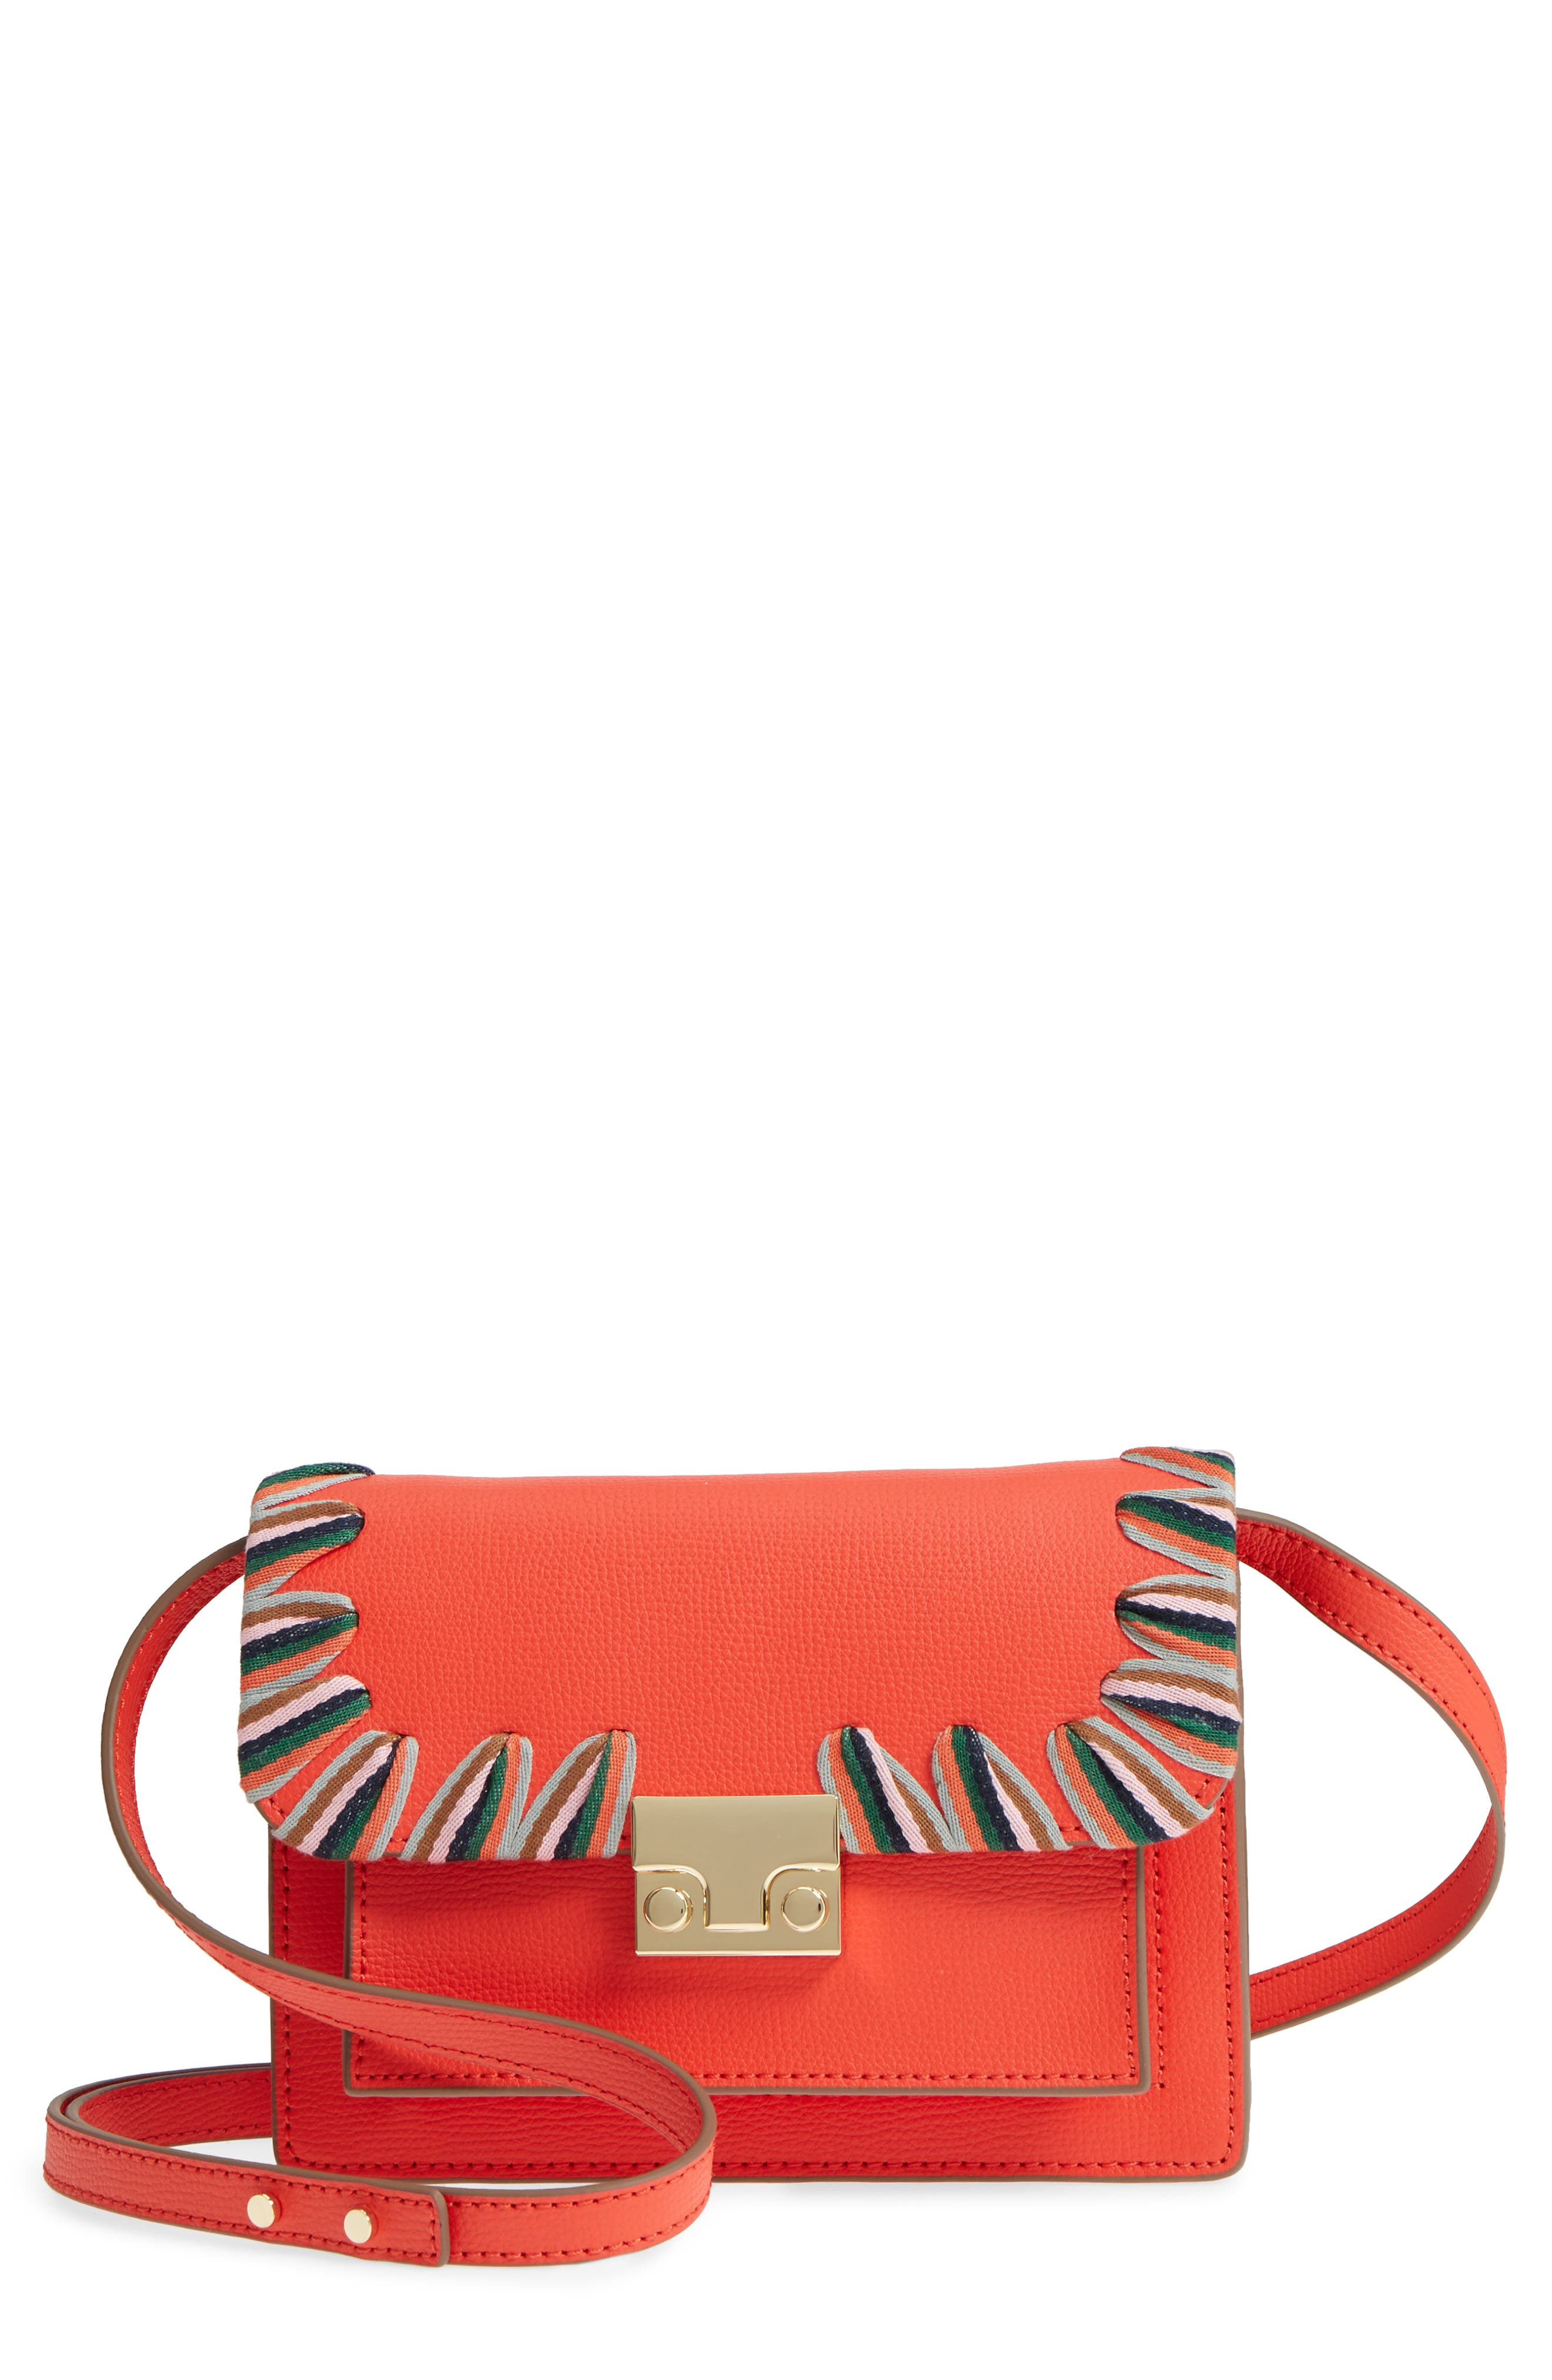 Mini Minimal Rider Leather Crossbody,                             Main thumbnail 1, color,                             802